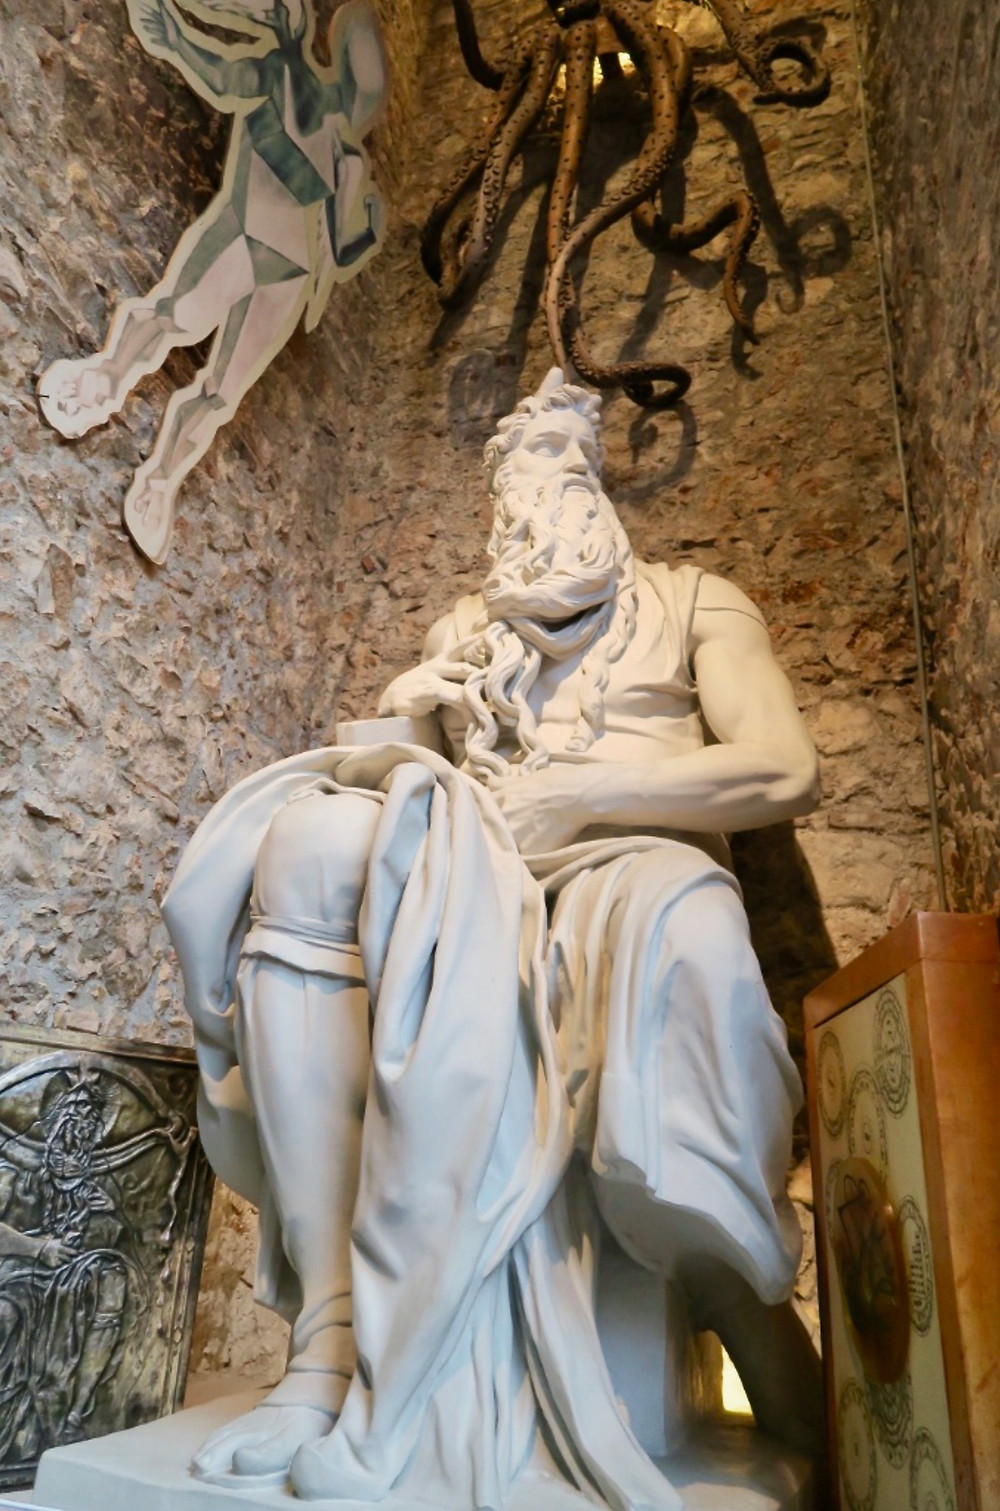 Moses with an octopus over his head, after Michelangelo's statue